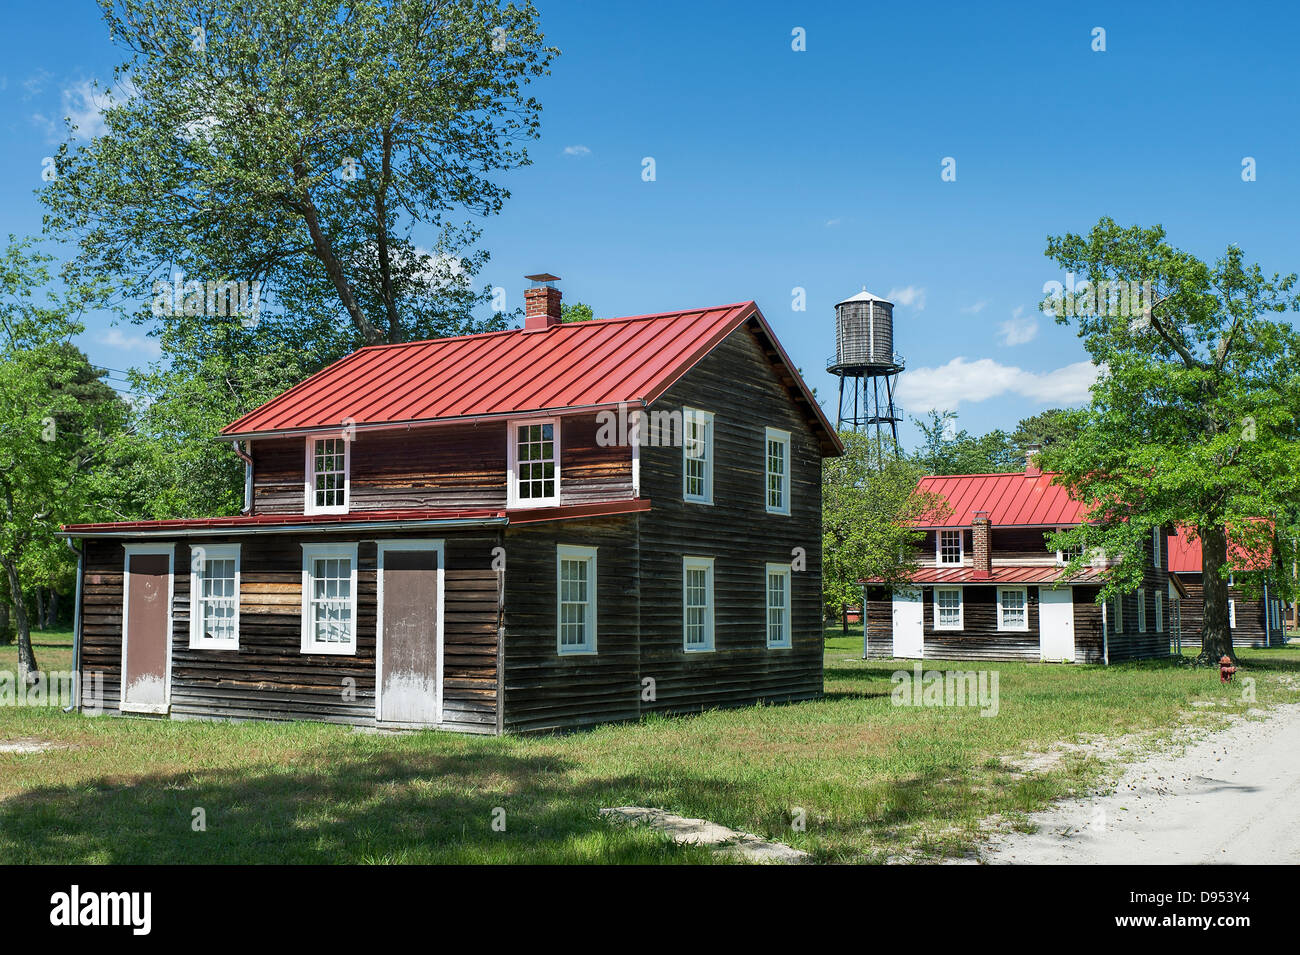 Worker cottages in Historic Whitesbog Village, Whitesbog, New Jersey, USA - Stock Image